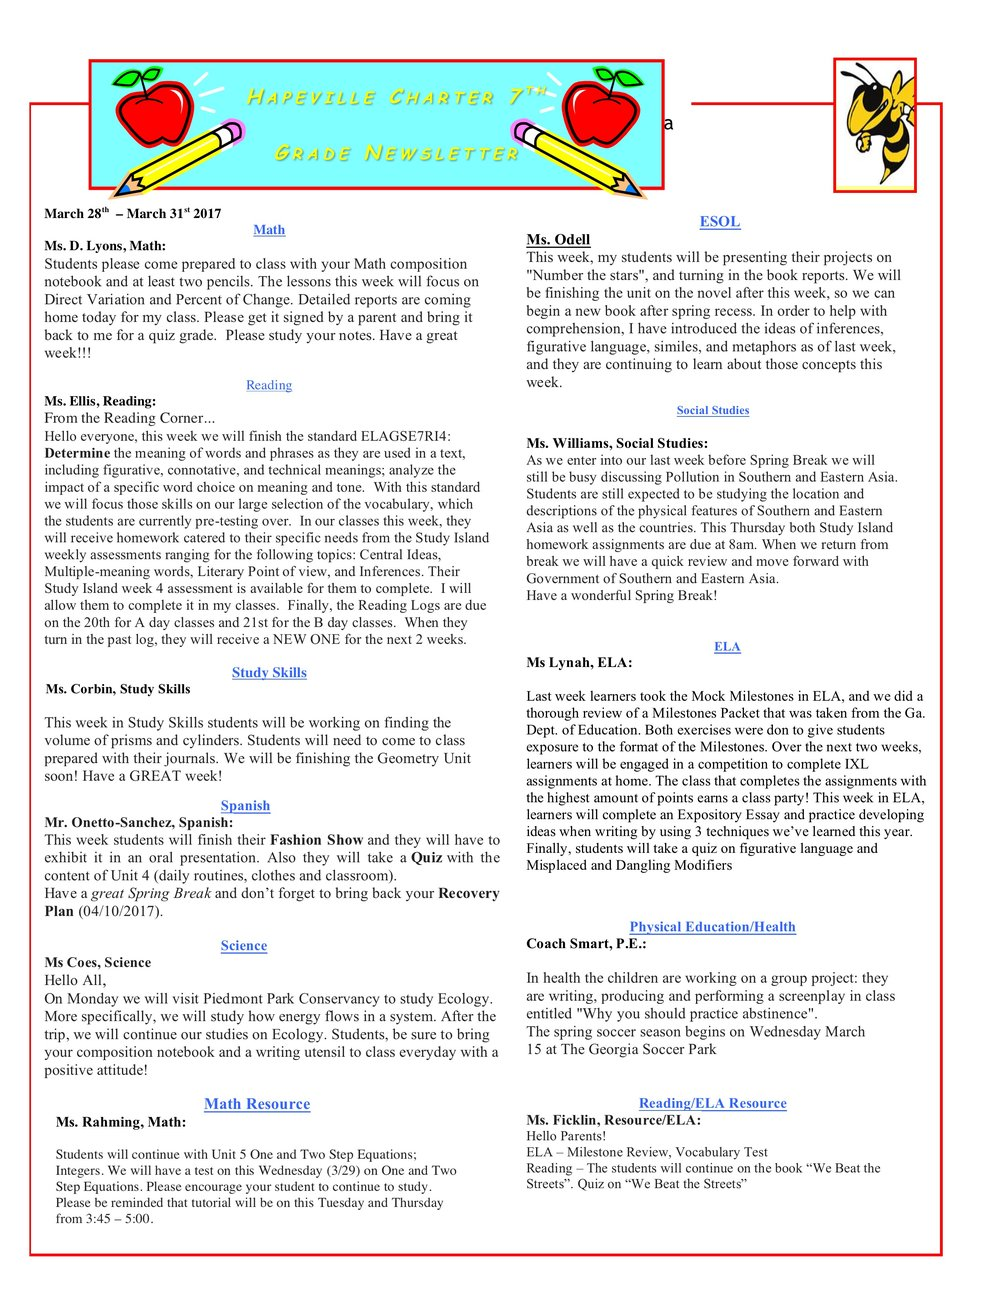 Newsletter Image7th Grade Newsletter 3-28-2017.jpeg